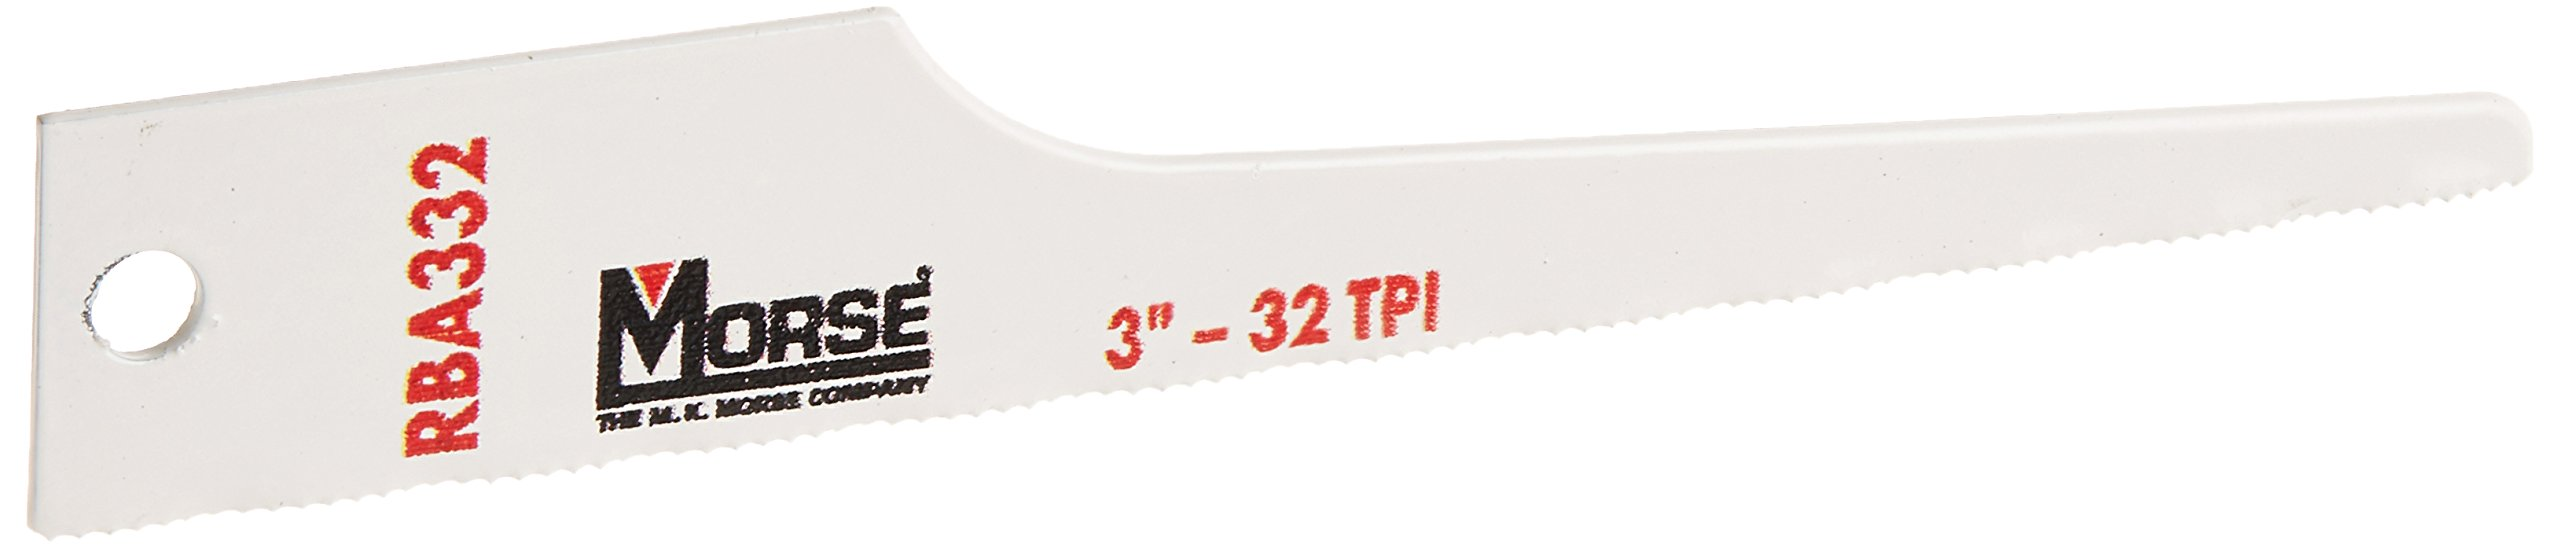 MK Morse RBA332T25 32 TPI Air Saw Blade (25 Pack), 3'' Length, 1/2'' Width, 0.025 Thickness by MK Morse